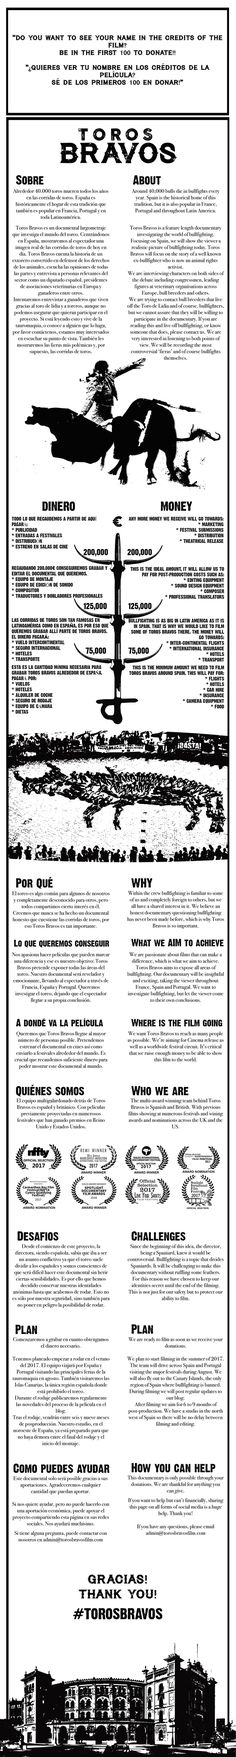 Toros Bravos is a feature-length documentary investigating the world of bullfighting.